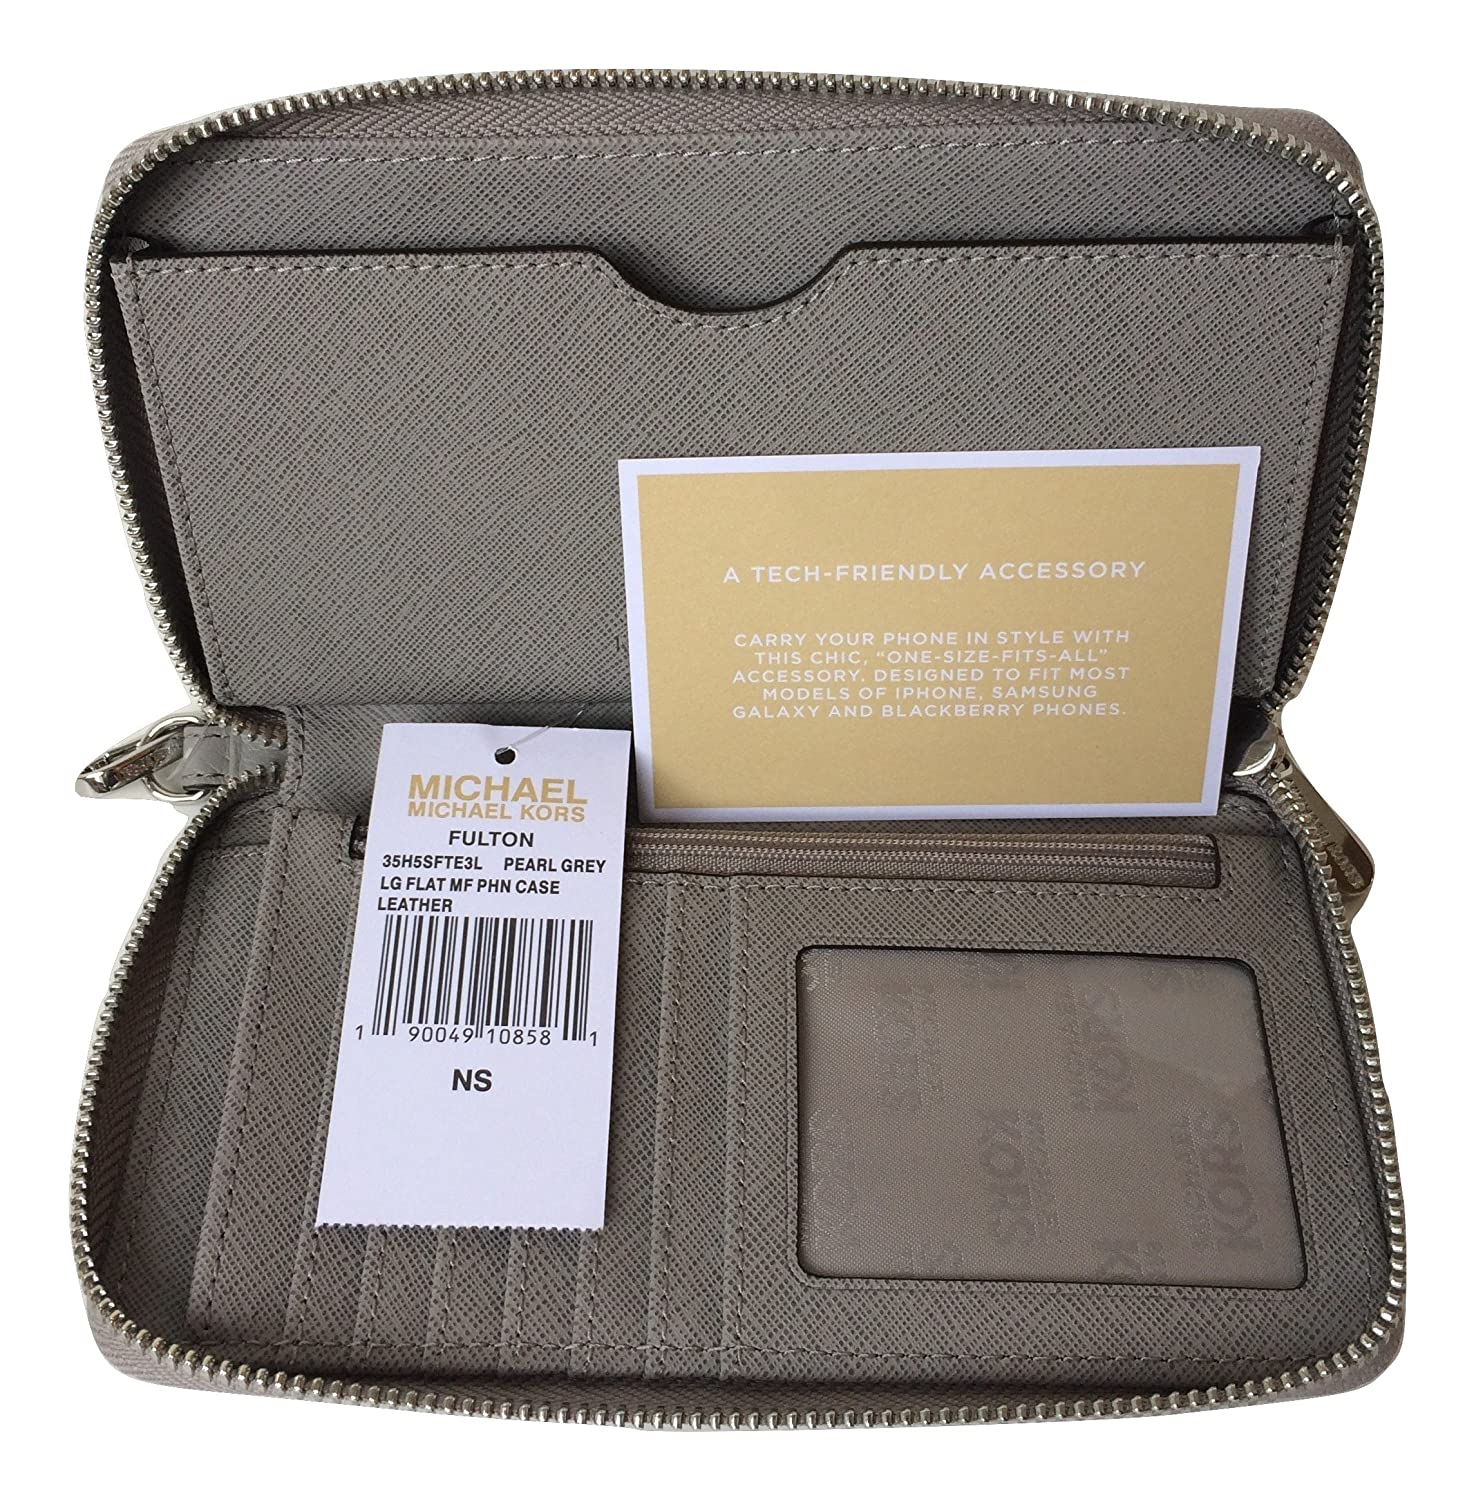 b2a9d0705685 Michael Kors Fulton Large Flat Multifunction Leather Phone Case (Pearl Grey):  Amazon.ca: Cell Phones & Accessories